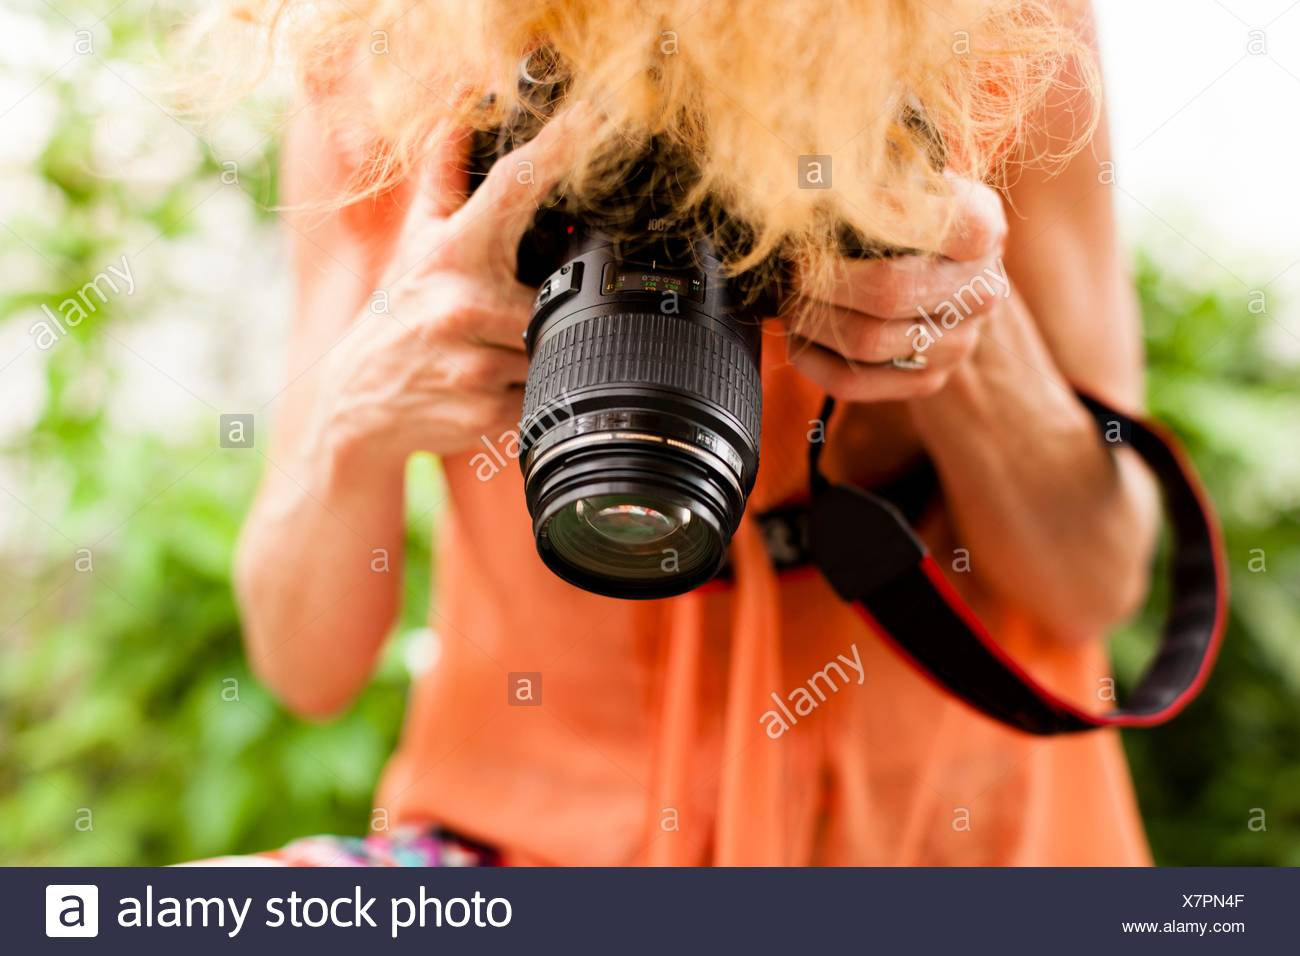 Cropped shot of woman with red hair photographing downward with digital SLR - Stock Image